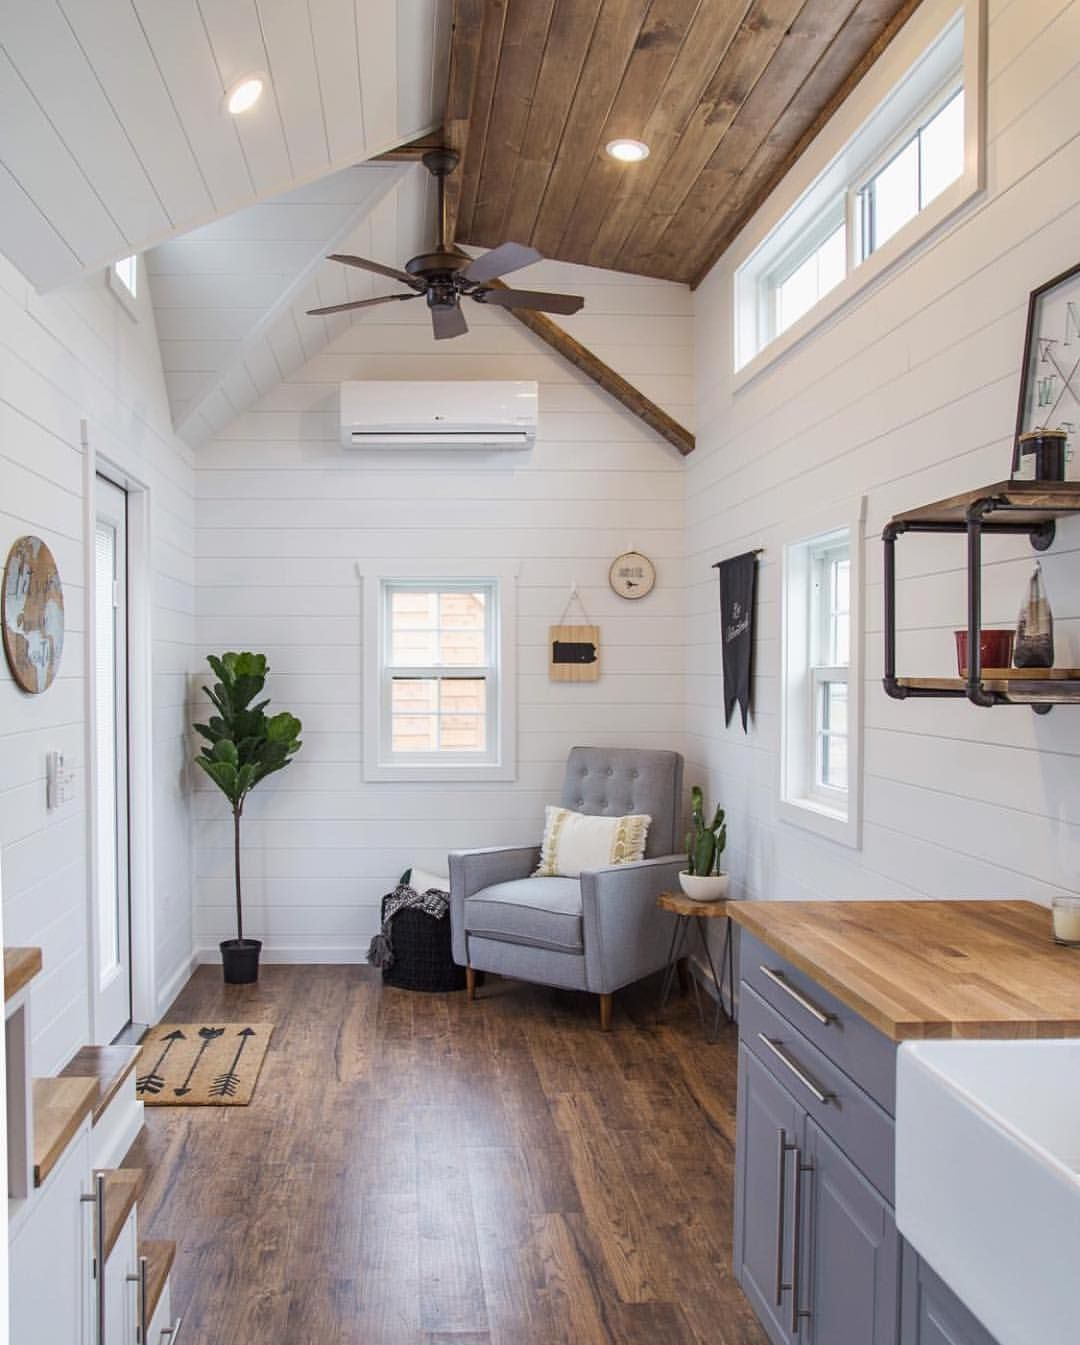 Small Luxury Homes: Pin By Maggie Woodworth On TINY